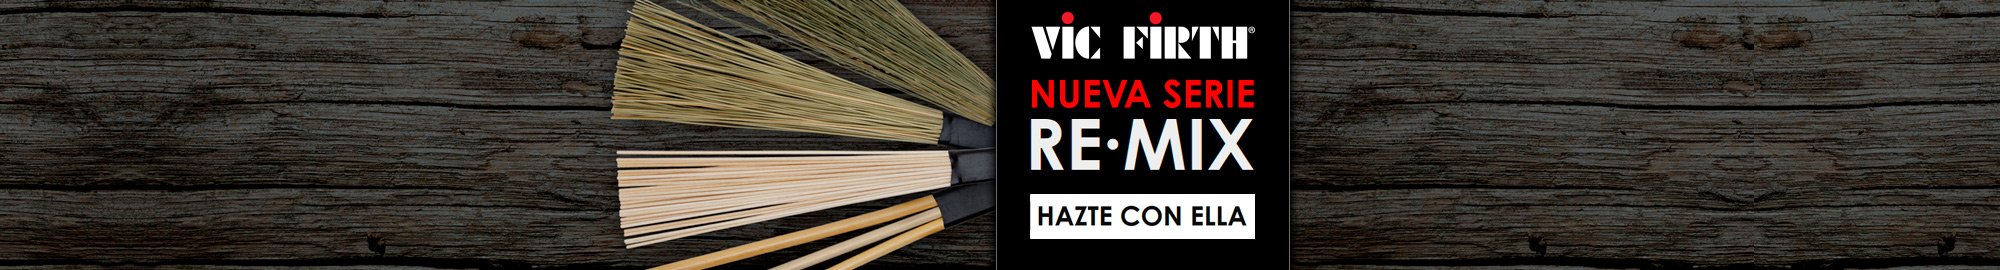 RE.MIX de Vic Firth